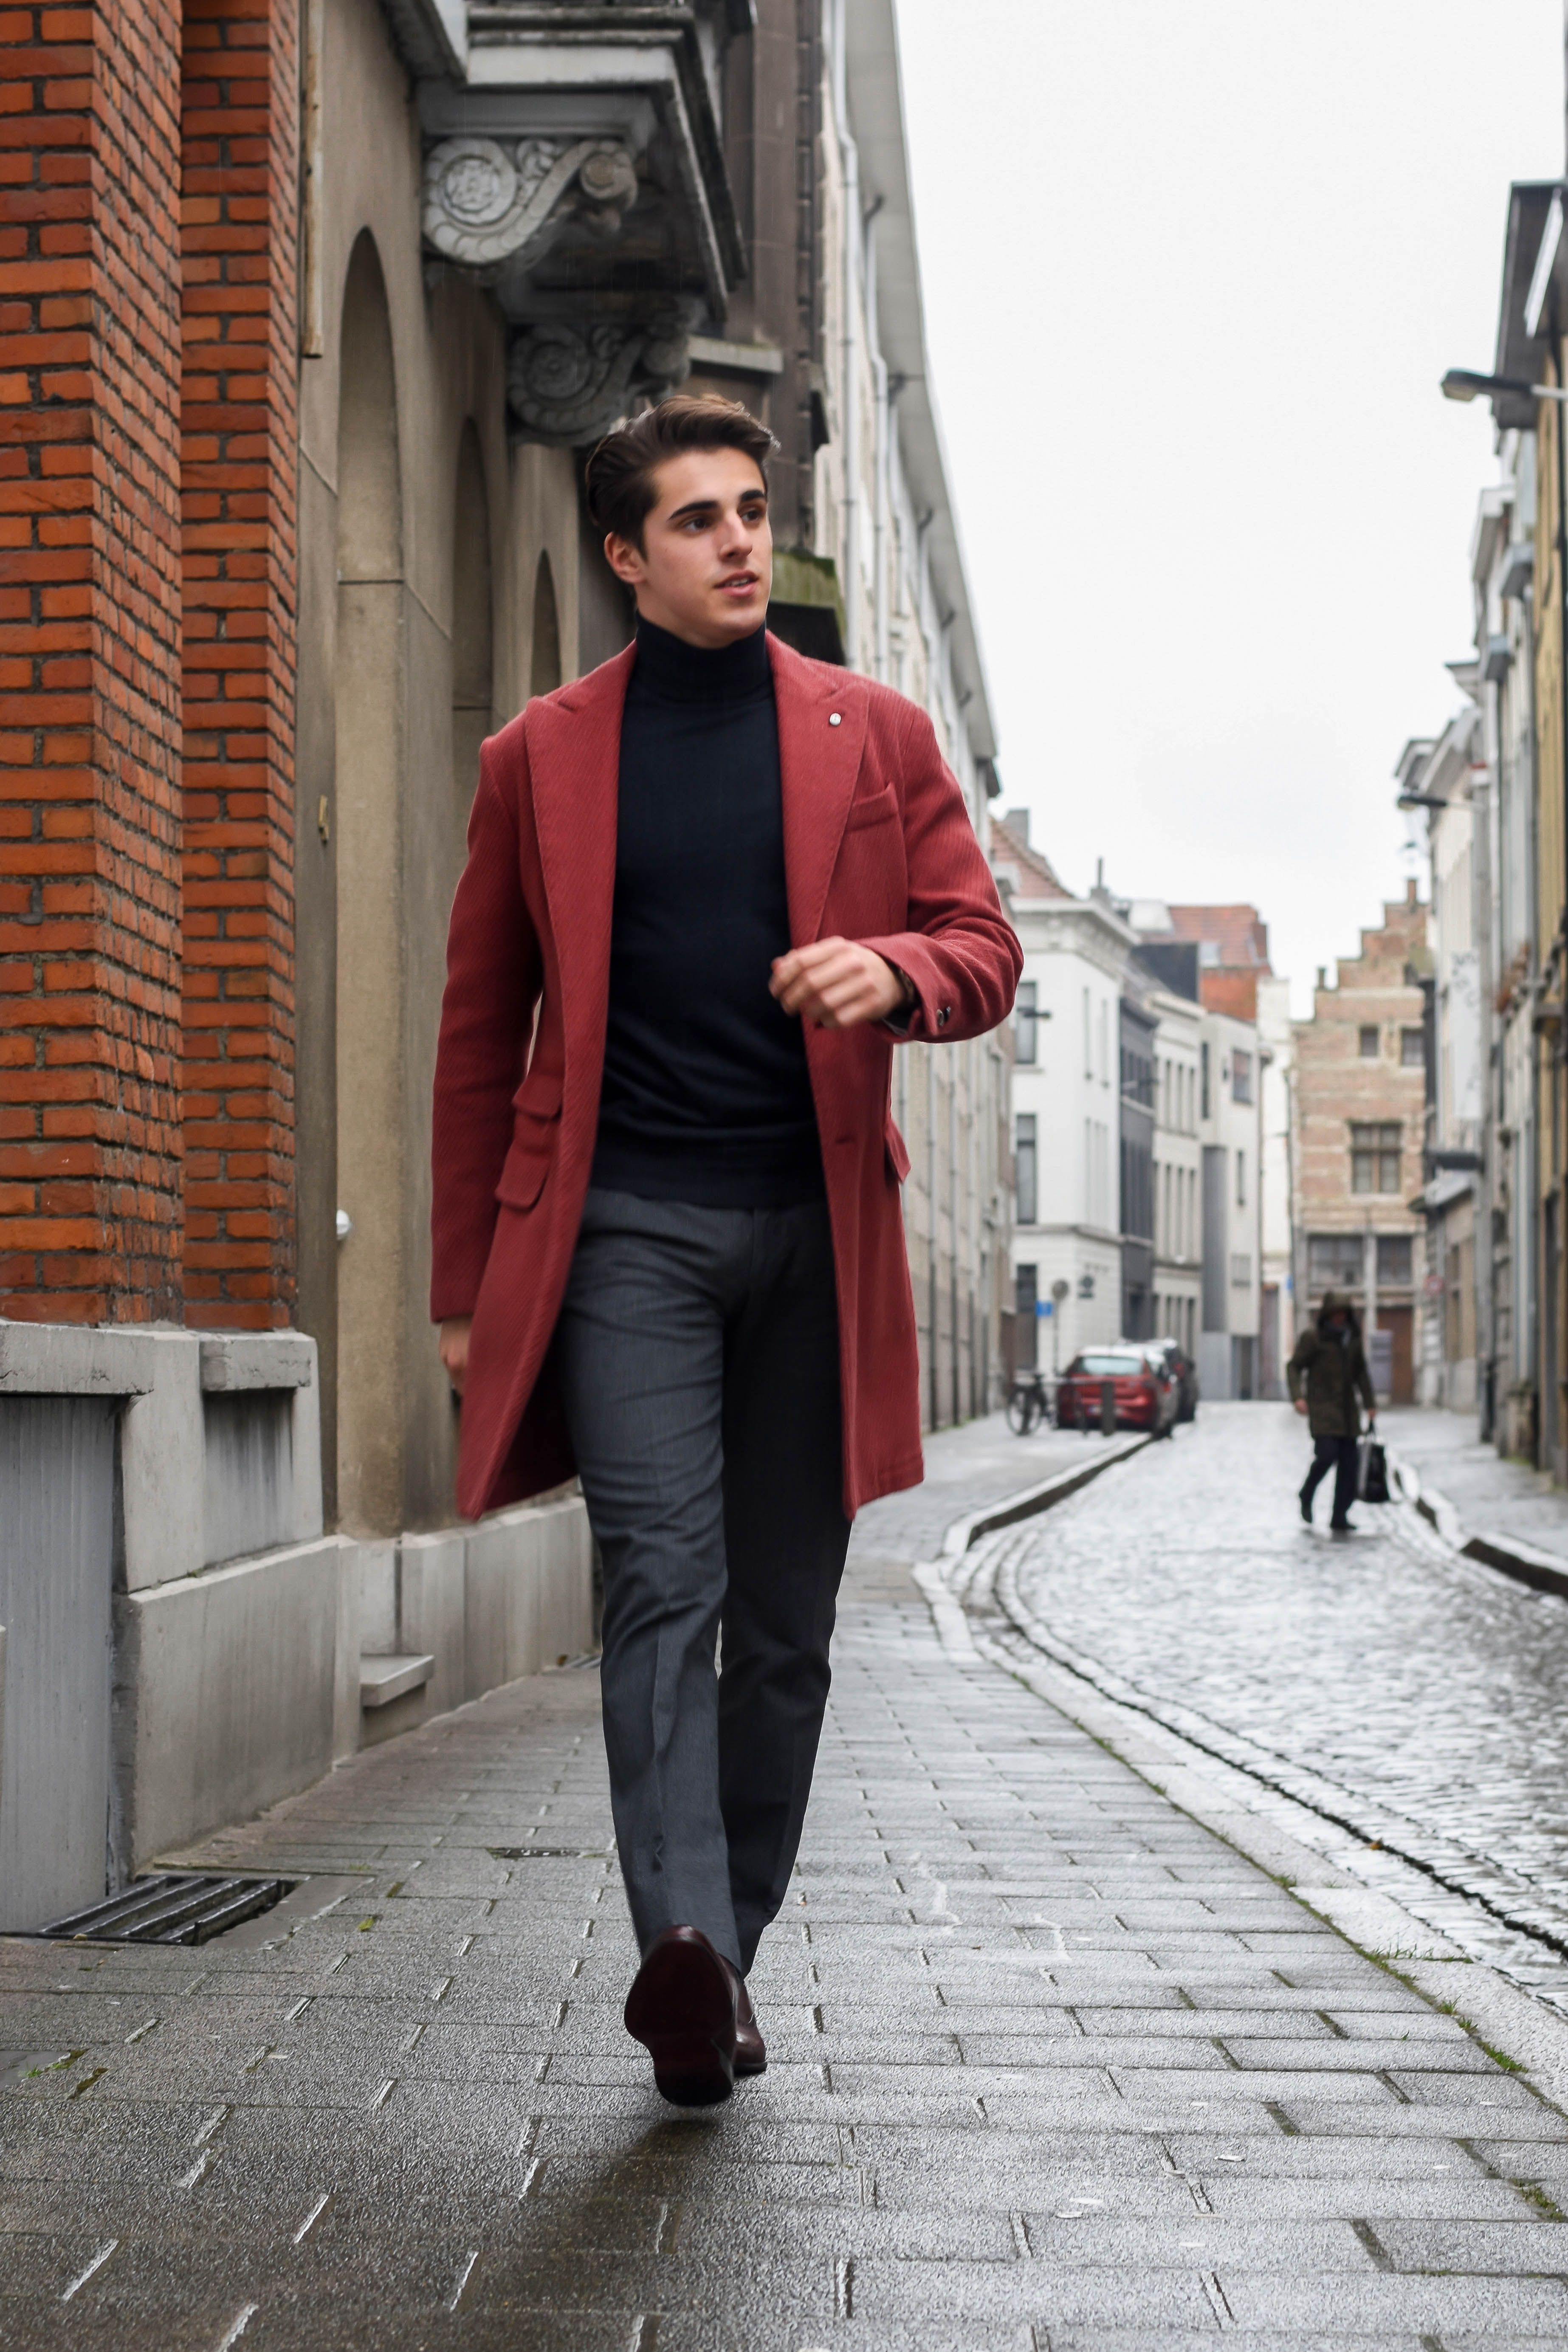 Mens simple but classy outfit for date night + Valentine